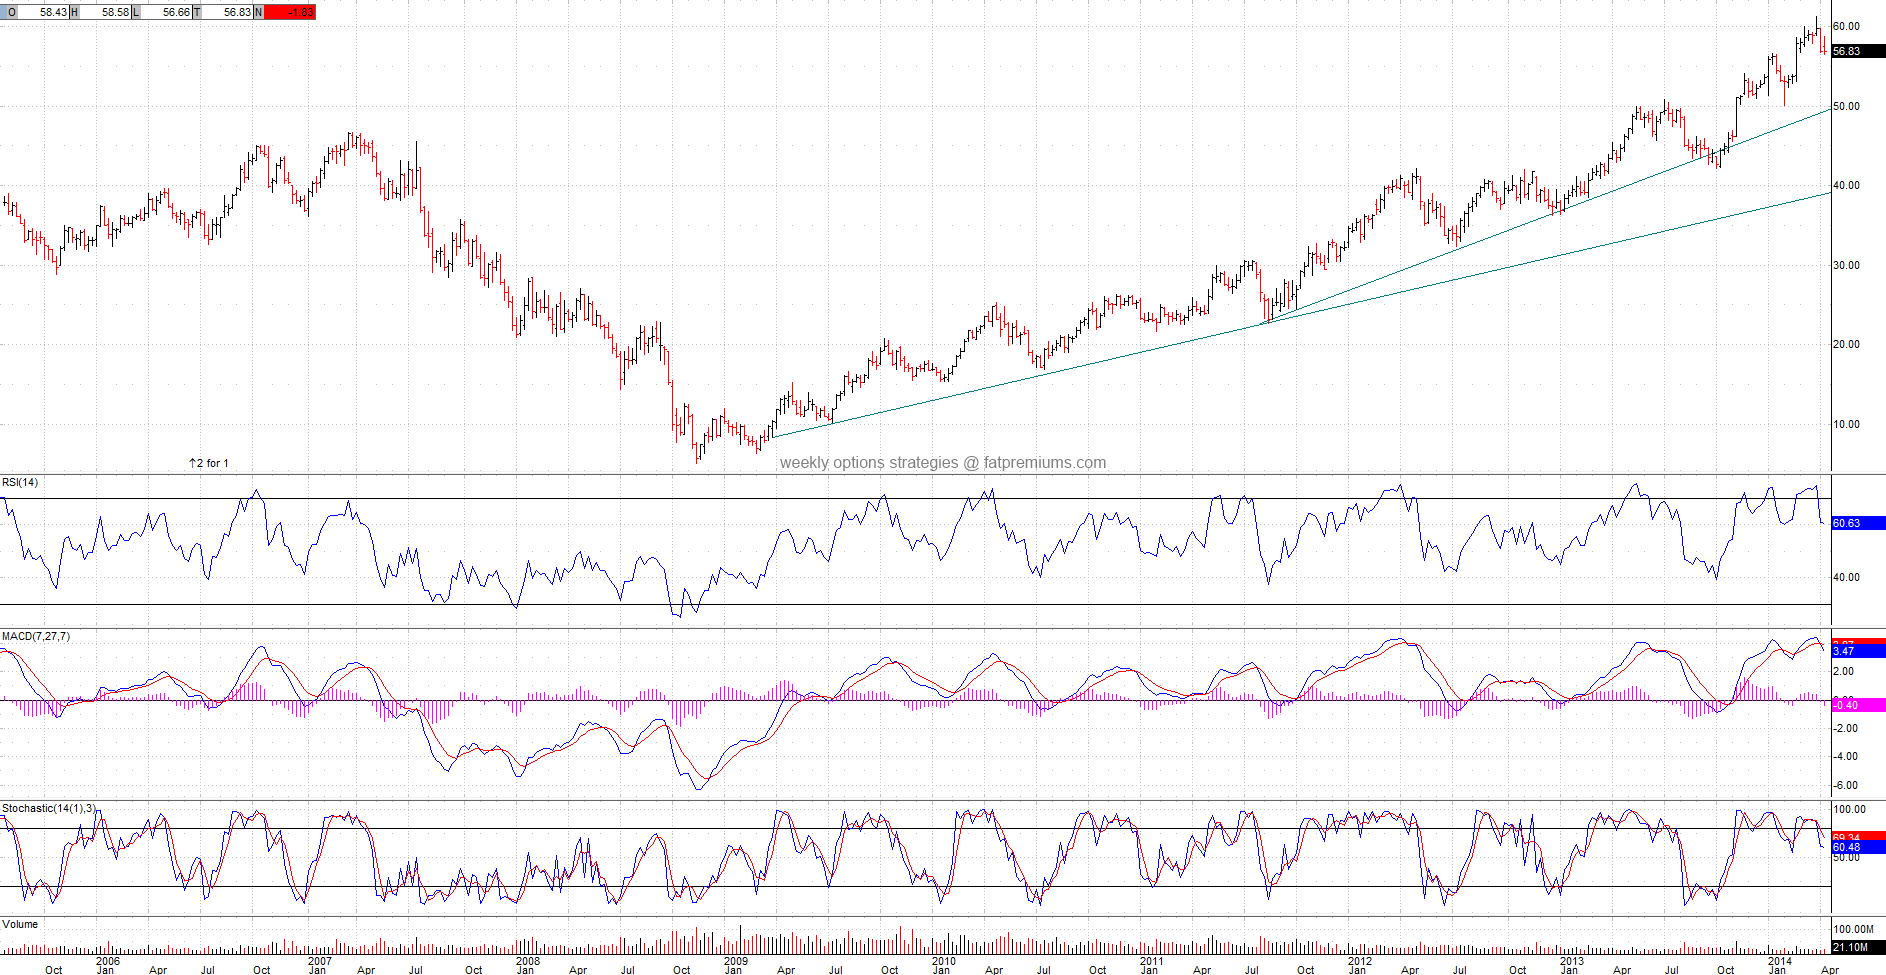 Macy's Inc (NYSE:M) Weekly Chart (2014-04-18) Bearish